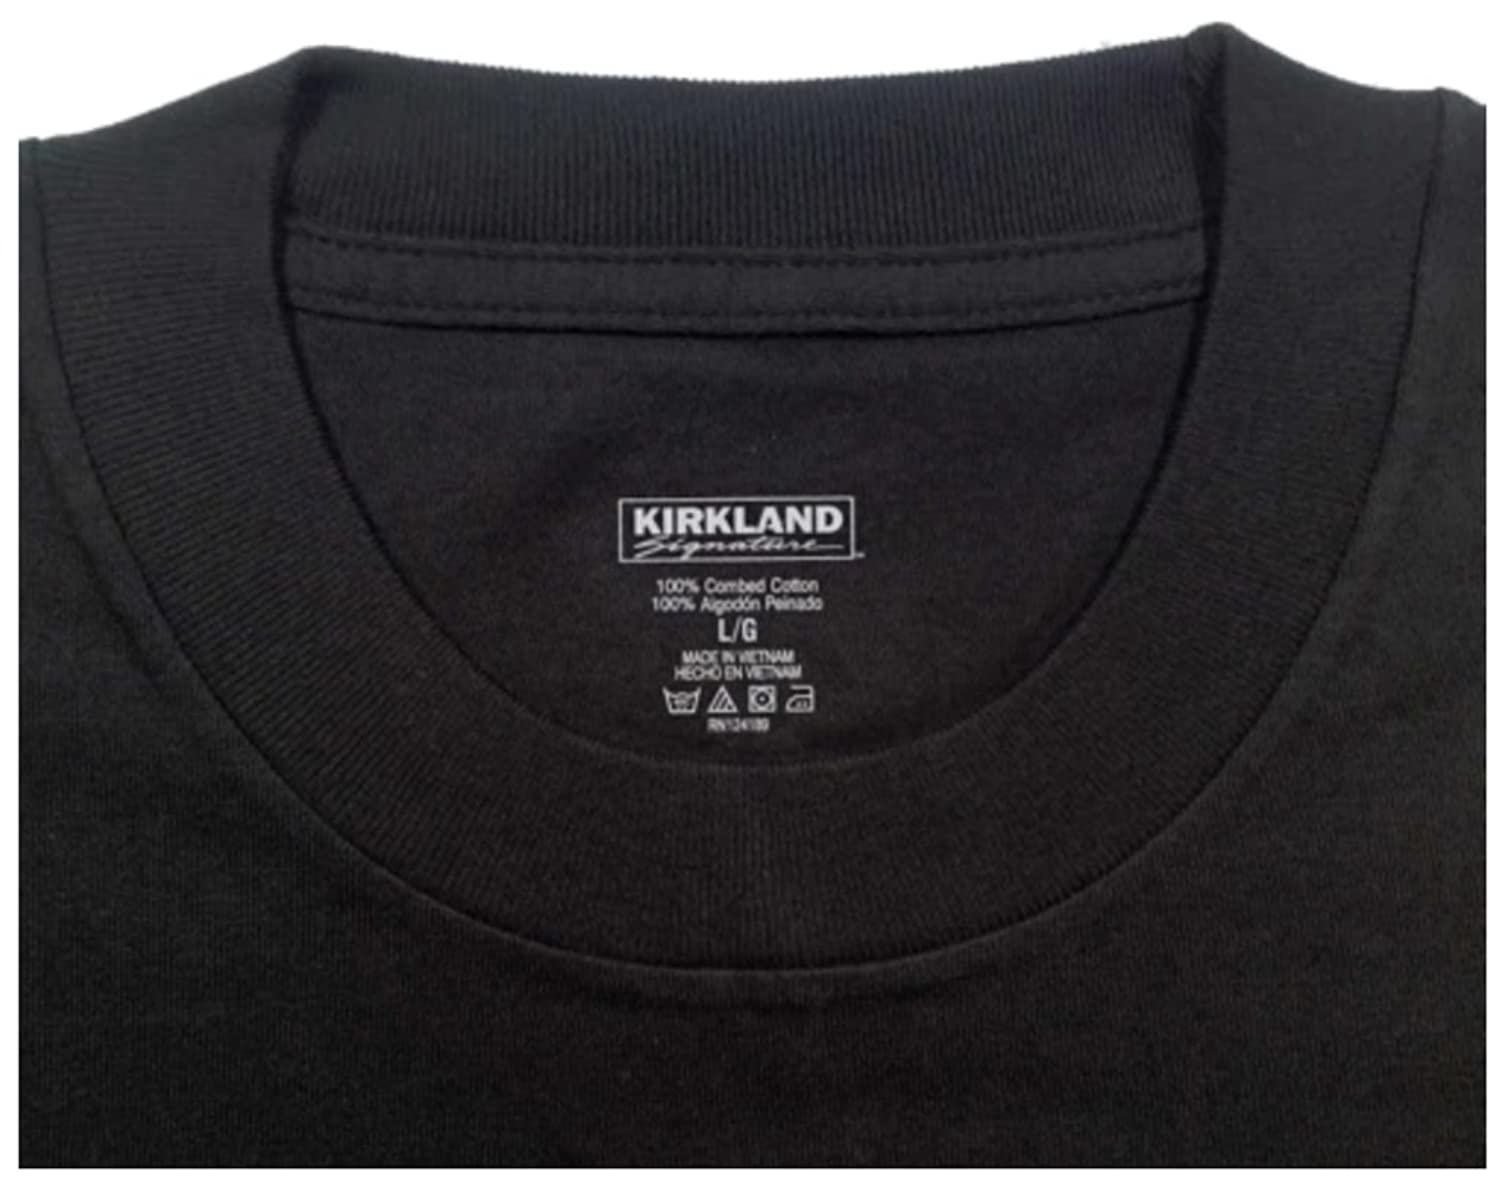 Kirkland black t shirts xl - Kirkland Black T Shirts Xl 19